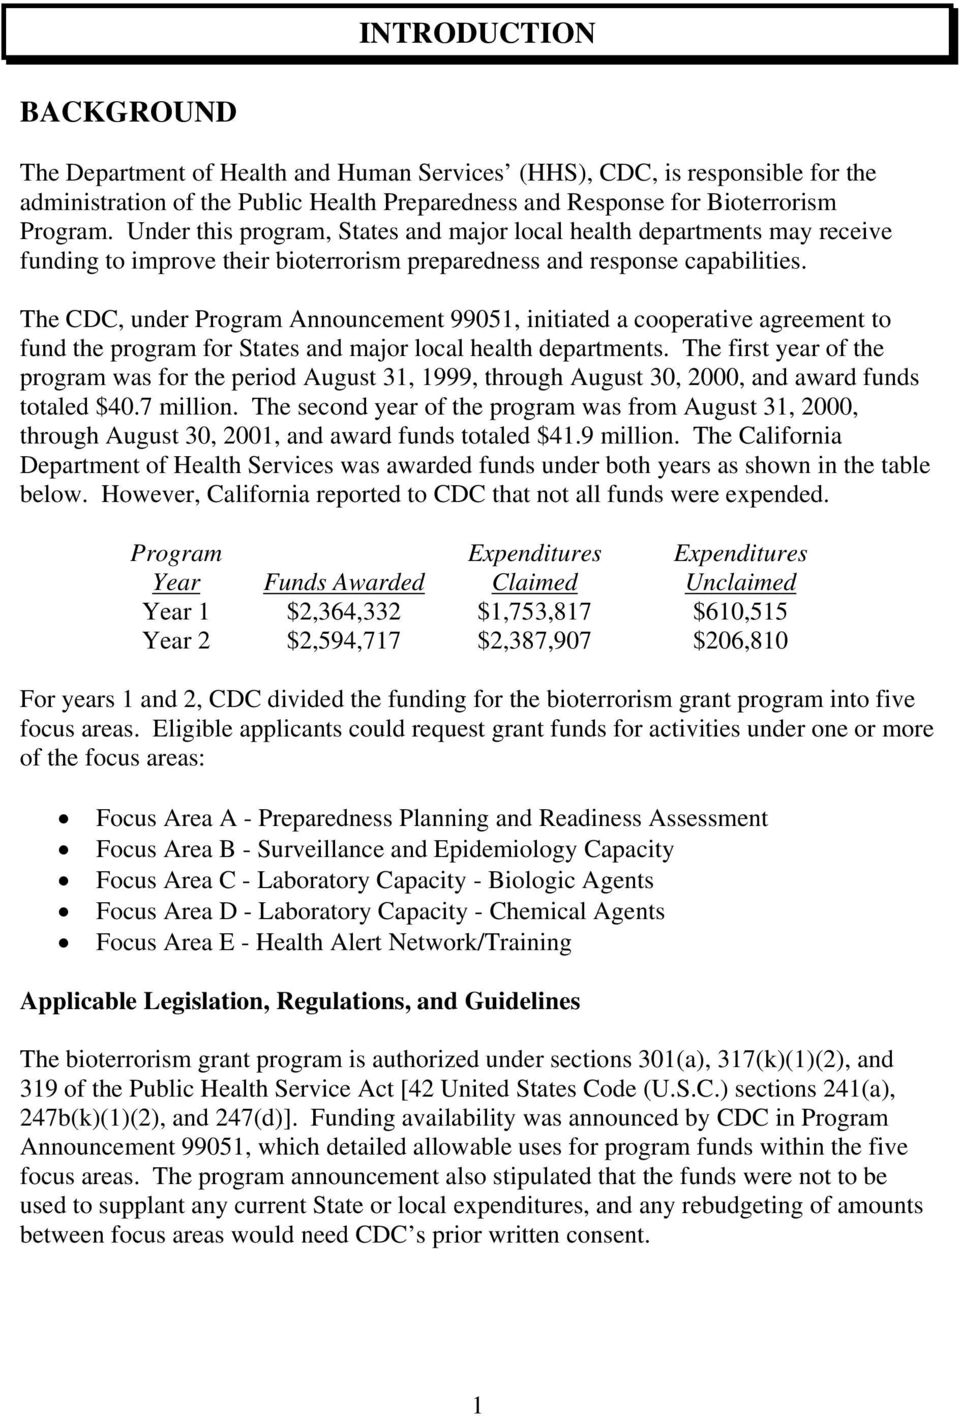 The CDC, under Program Announcement 99051, initiated a cooperative agreement to fund the program for States and major local health departments.